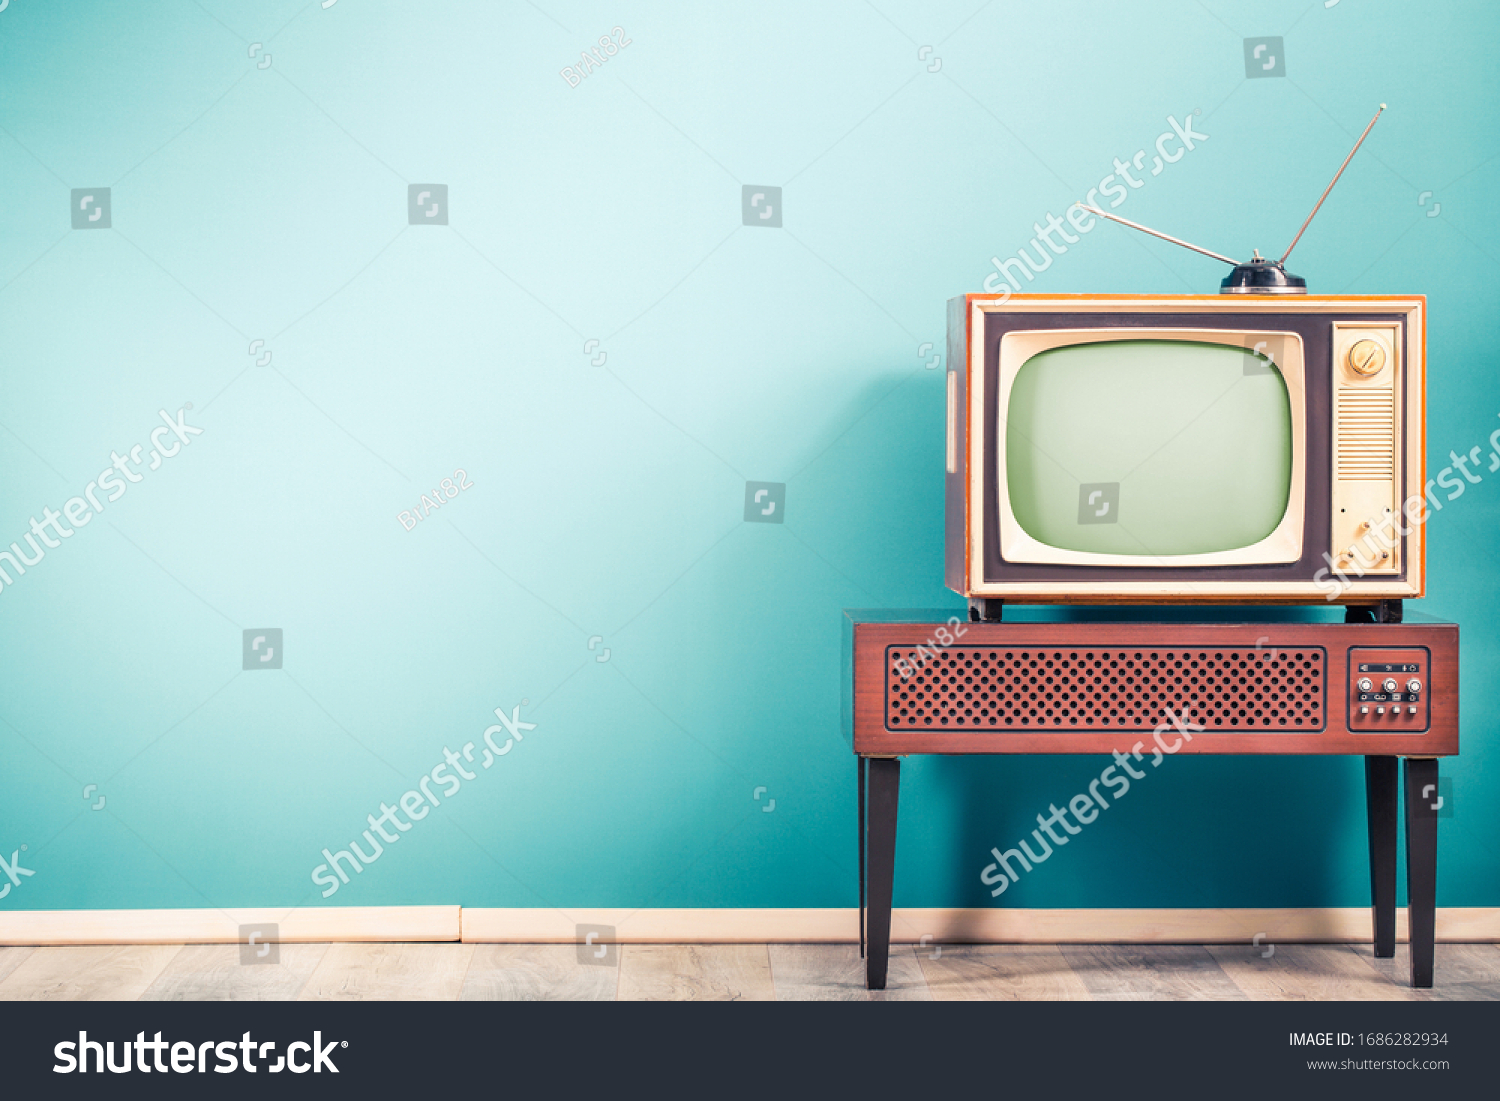 Retro old outdated classic television receiver with TV antenna from circa 60s of XX century on wooden stand with amplifier front gradient mint blue wall background. Vintage style filtered photo #1686282934